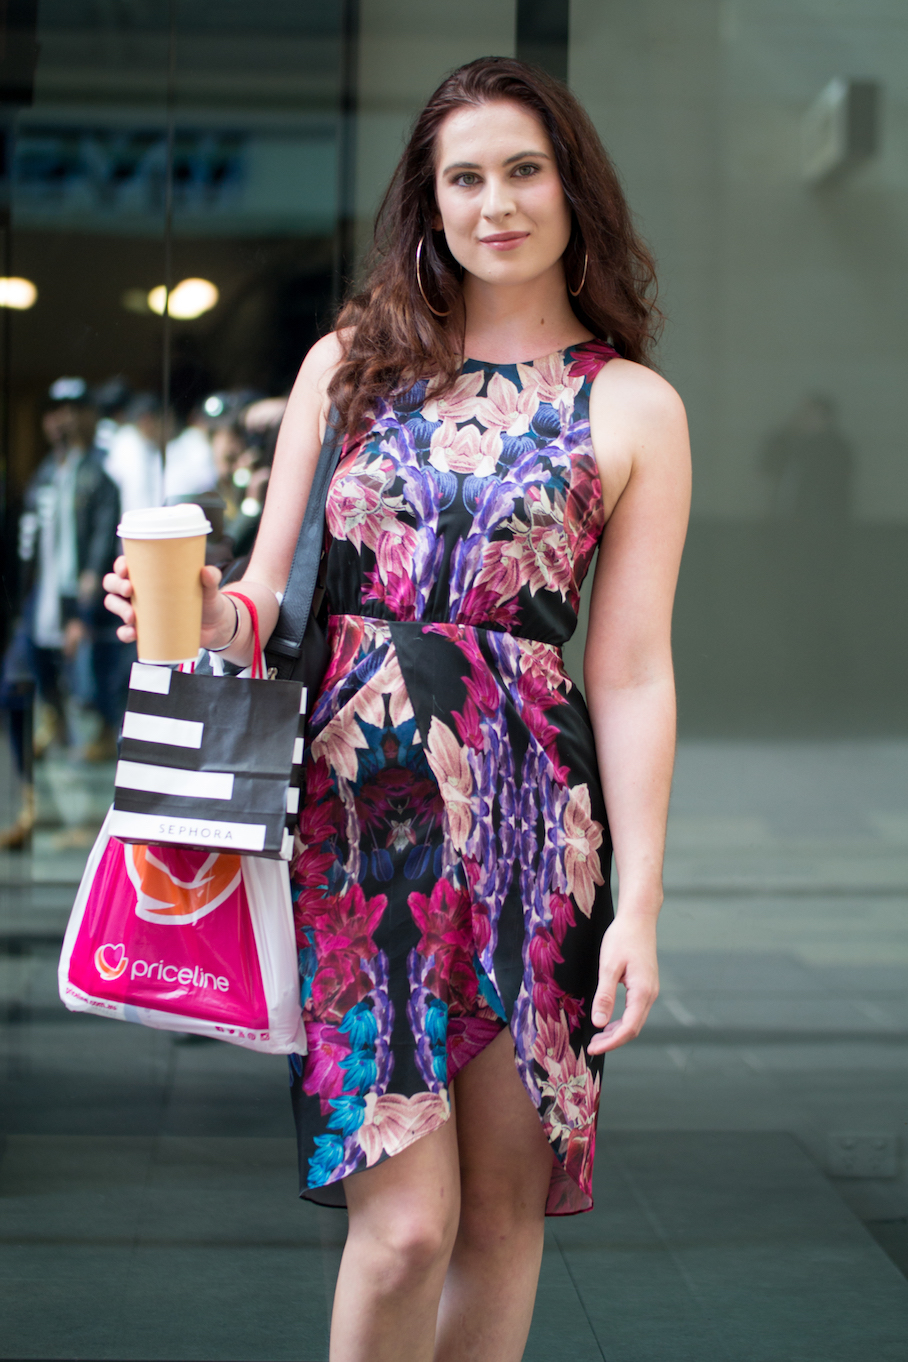 "NSW: Stephanie Luford, Student, Pitt St. ""I'd describe my style as feminine and elegant."" Photo: Alice Scriberras"